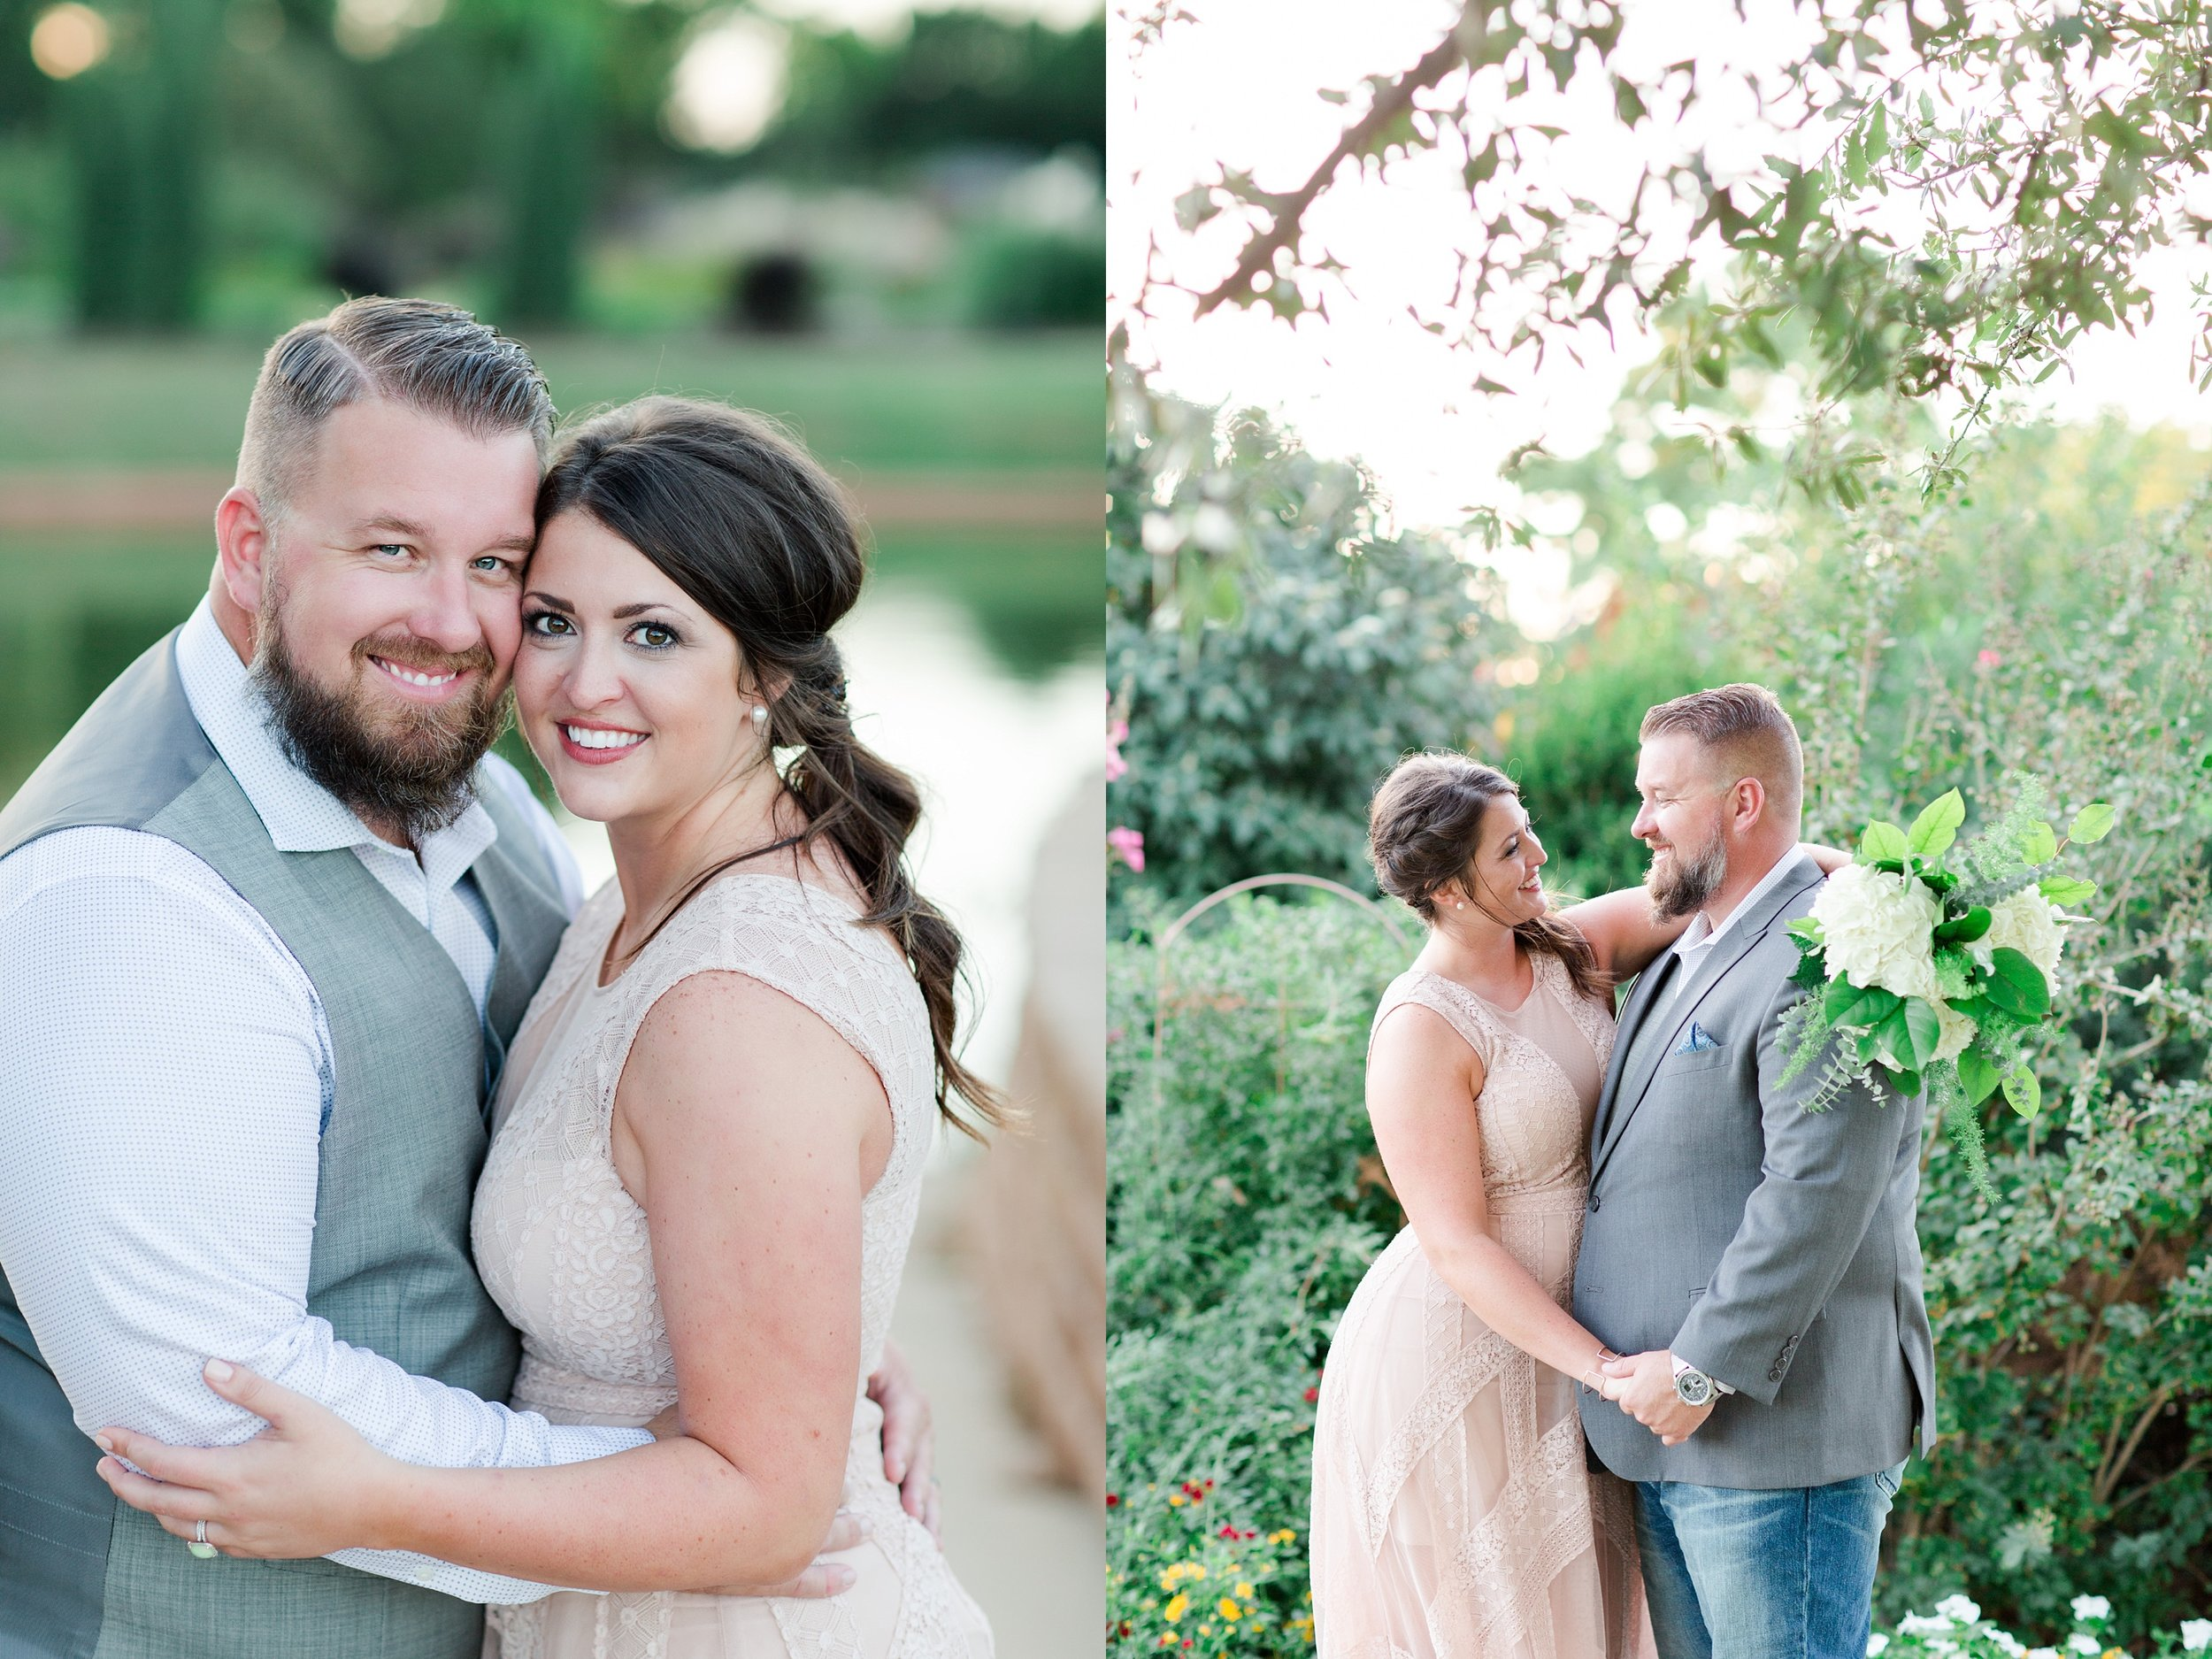 Lycan Conservatory Wedding, Komorebi Photography By: Jessica McBroom